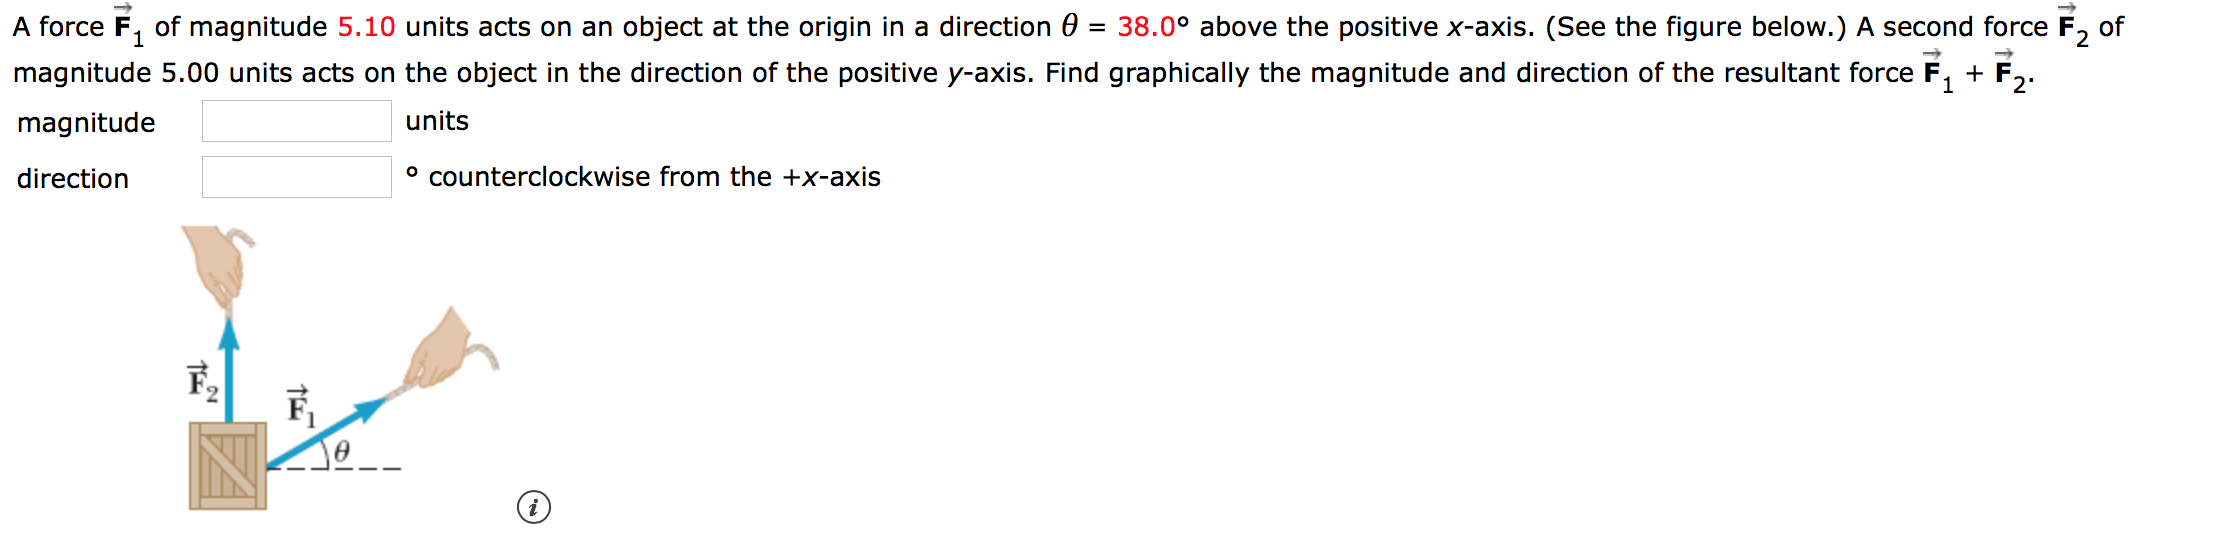 A force F of magnitude 5.10 units acts on an object at the origin in a direction 0 = 38.0° above the positive x-axis. (See the figure below.) A second force F2 of magnitude 5.00 units acts on the object in the direction of the positive y-axis. Find graphically the magnitude and direction of the resultant force F 1 2 units magnitude ocounterclockwise from the +x-axis direction